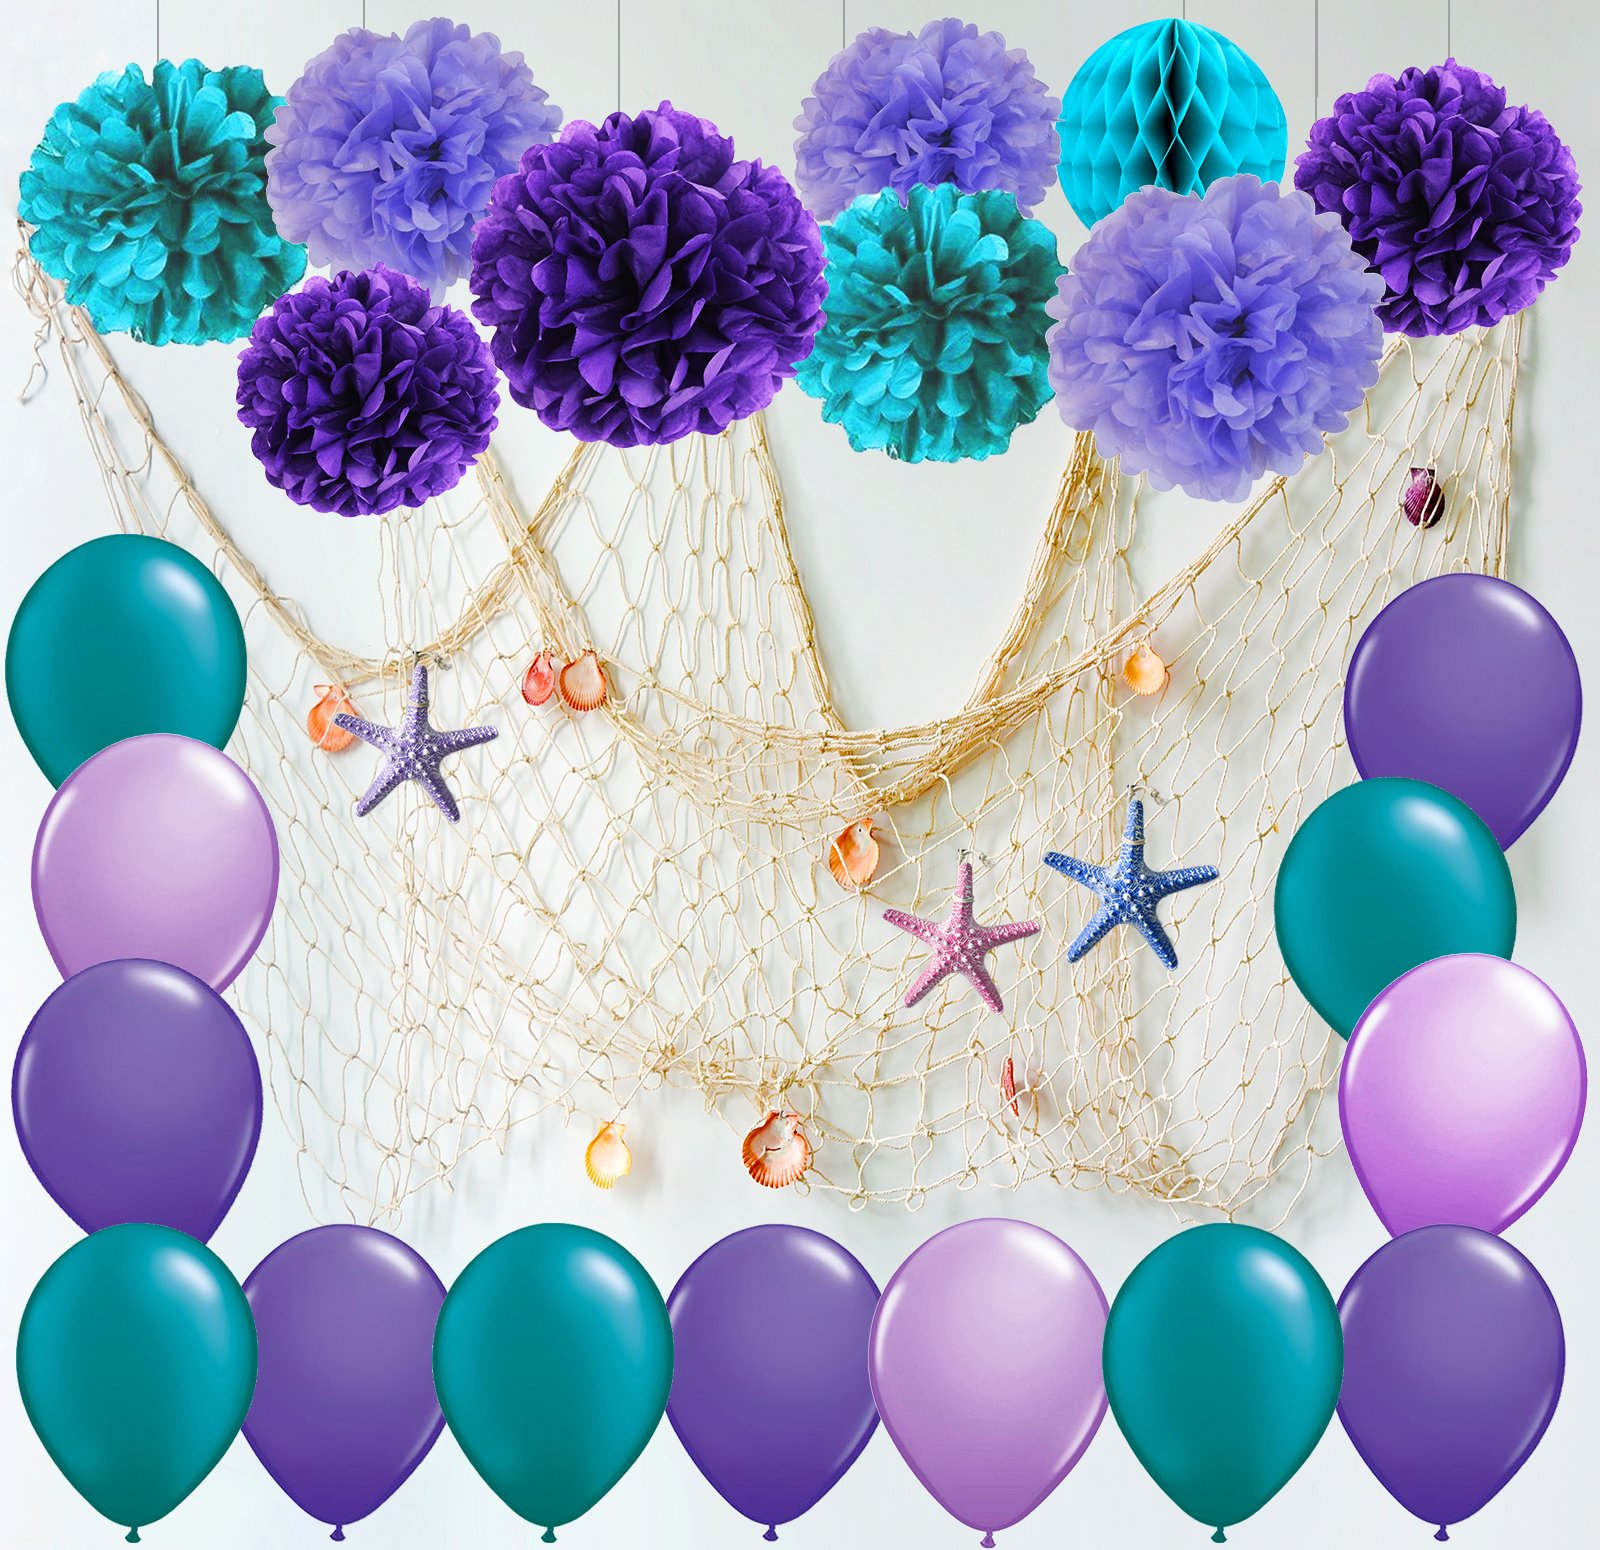 Furuix Mermaid Party Decorations /Under The Sea Party Teal Lavender Purple Tissue Paper Pom Pom Latex Balloons Fish Net with Shells and starffor Mermaid Birthday Decor Baby Shower Decorations (White)